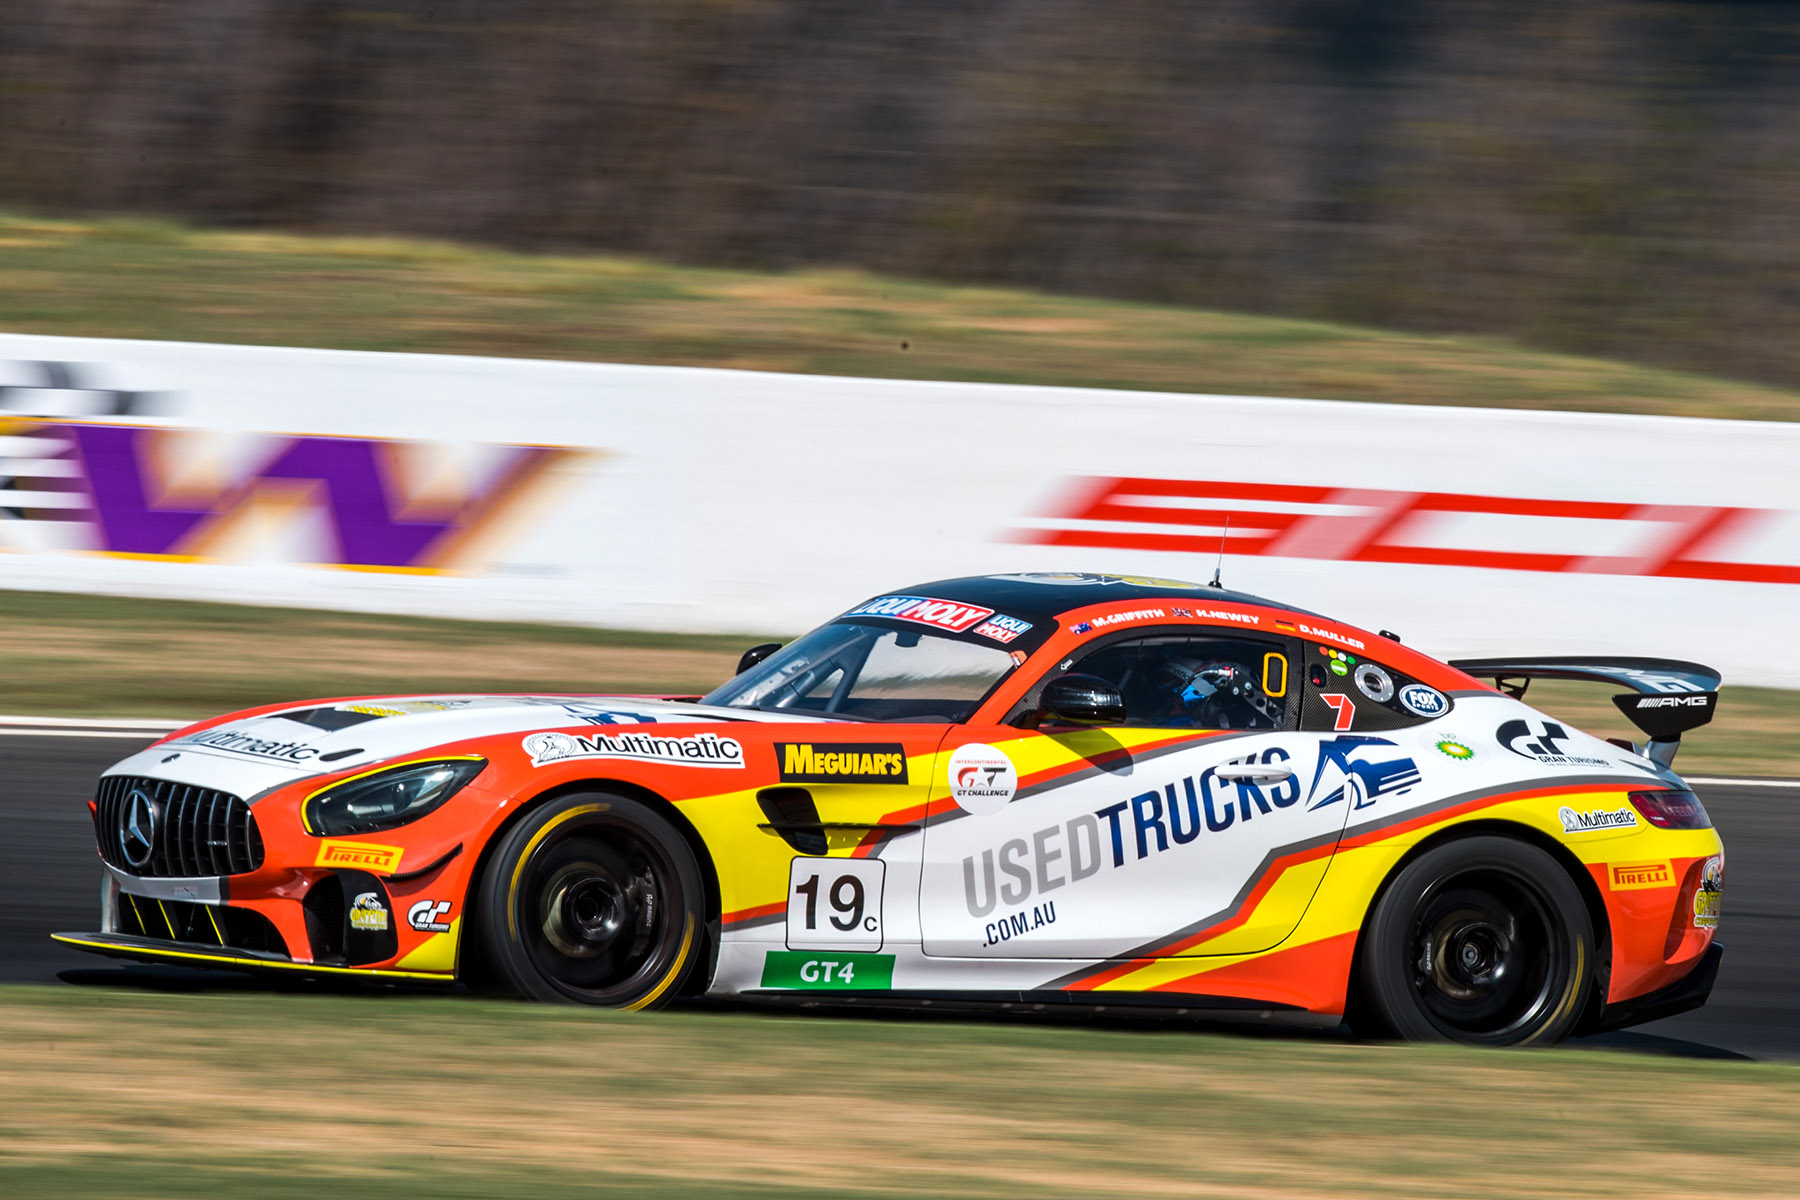 Mercedes-AMG GT4 to make Australian GT debut